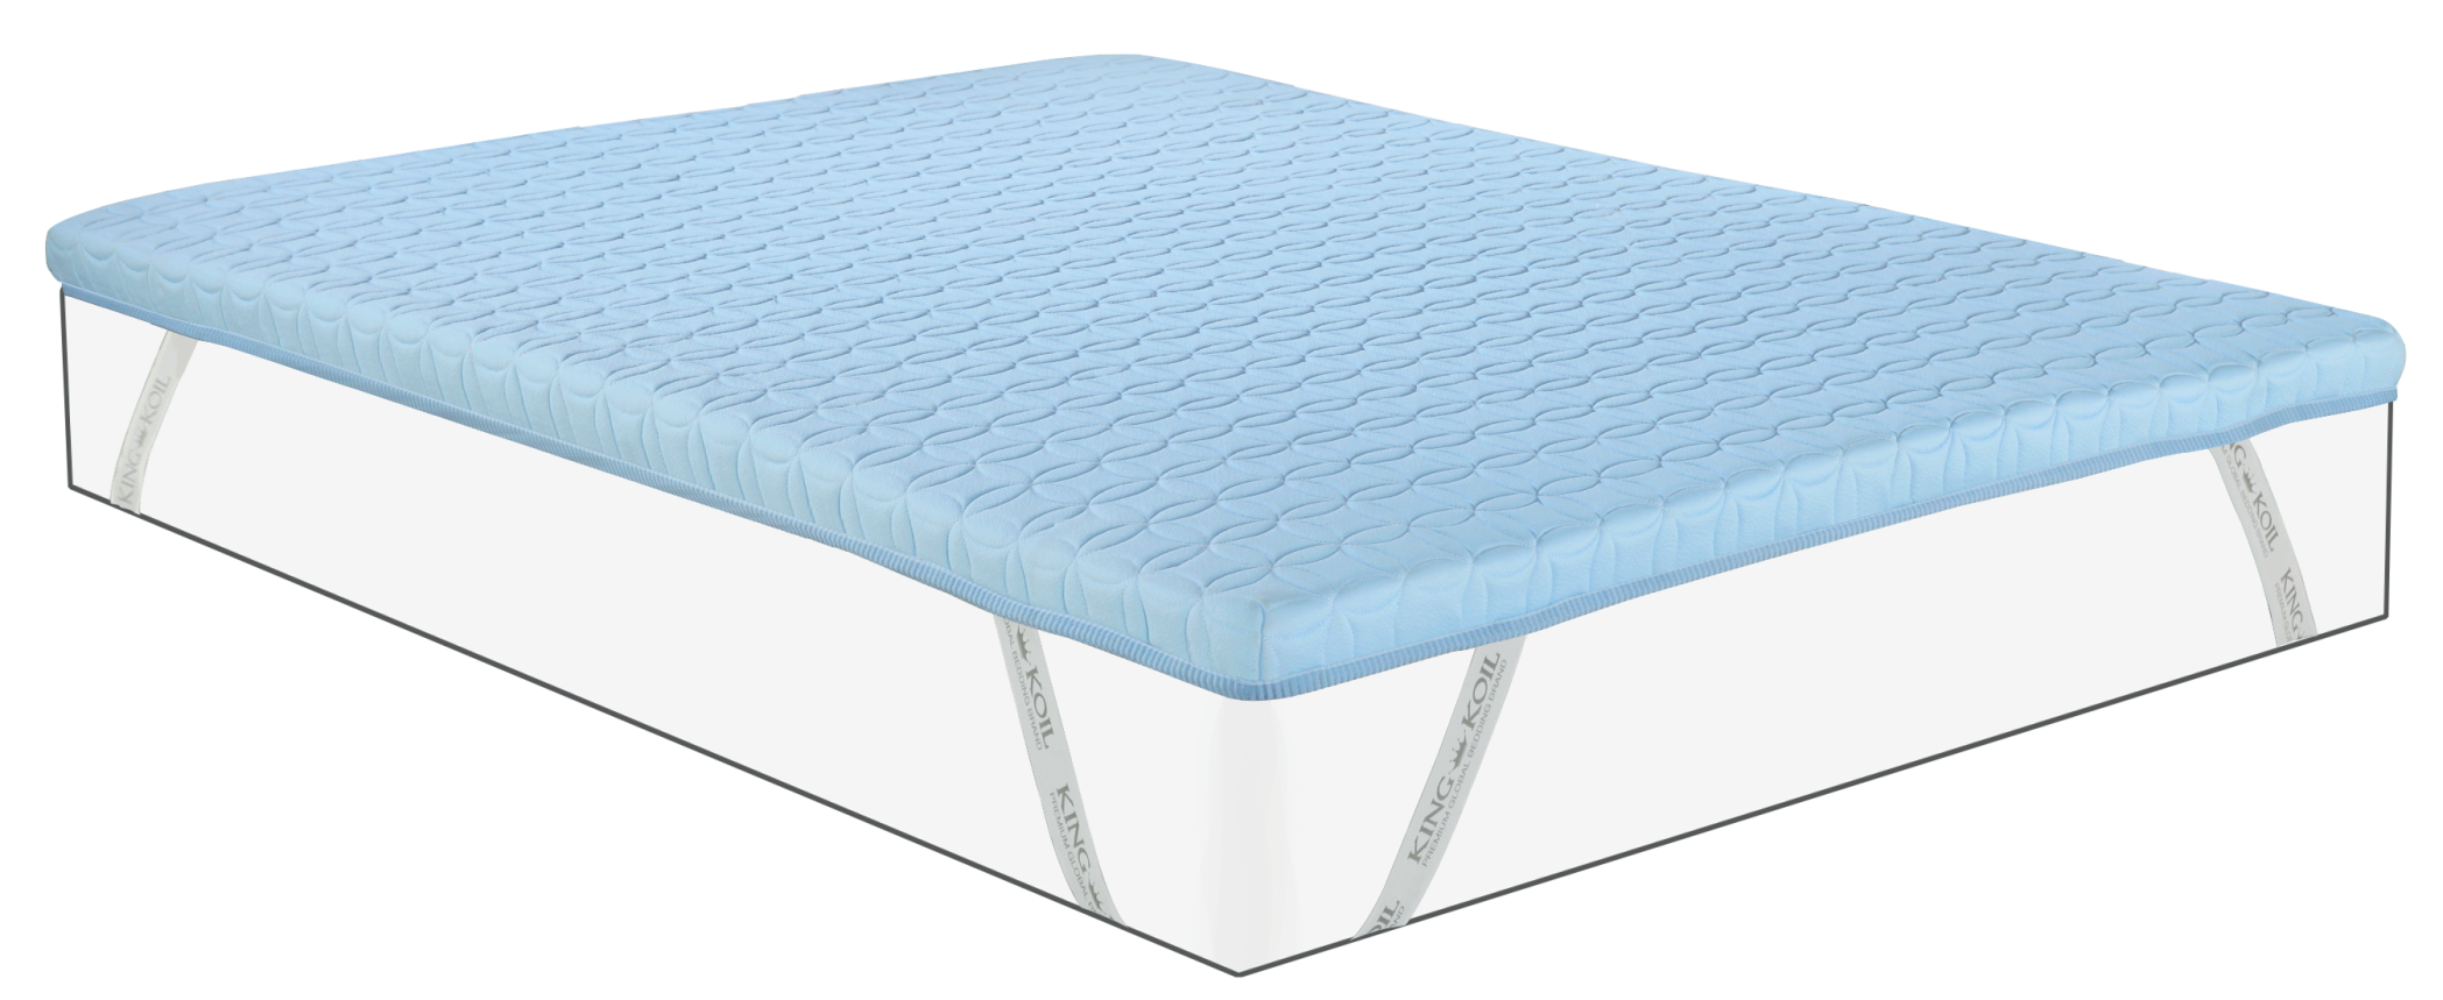 PU Foam Soft Mattress Topper